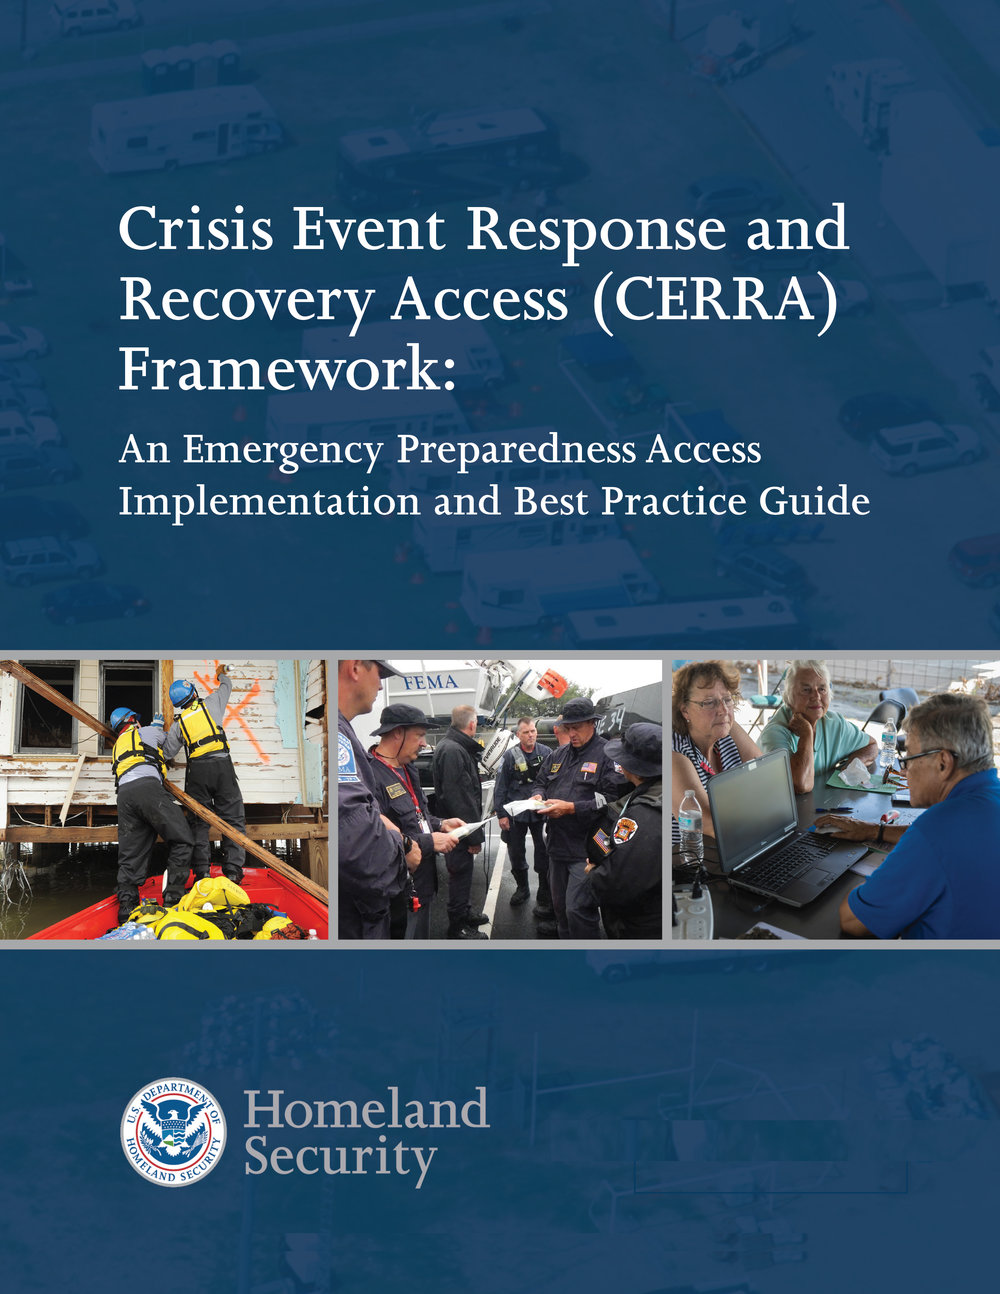 The CERRA Best-Practices Approach - CERRA is a nationwide DHS and FEMA supported effort designed to ensure that all emergency access uses the same basic format across multiple local jurisdictions. The goal of this effort is to standardize one format for Reentry Access with a common backend infrastructure, while allowing the local jurisdictions the ability to adopt, create, and control access program's that fit their needs.CERRA Framework ->